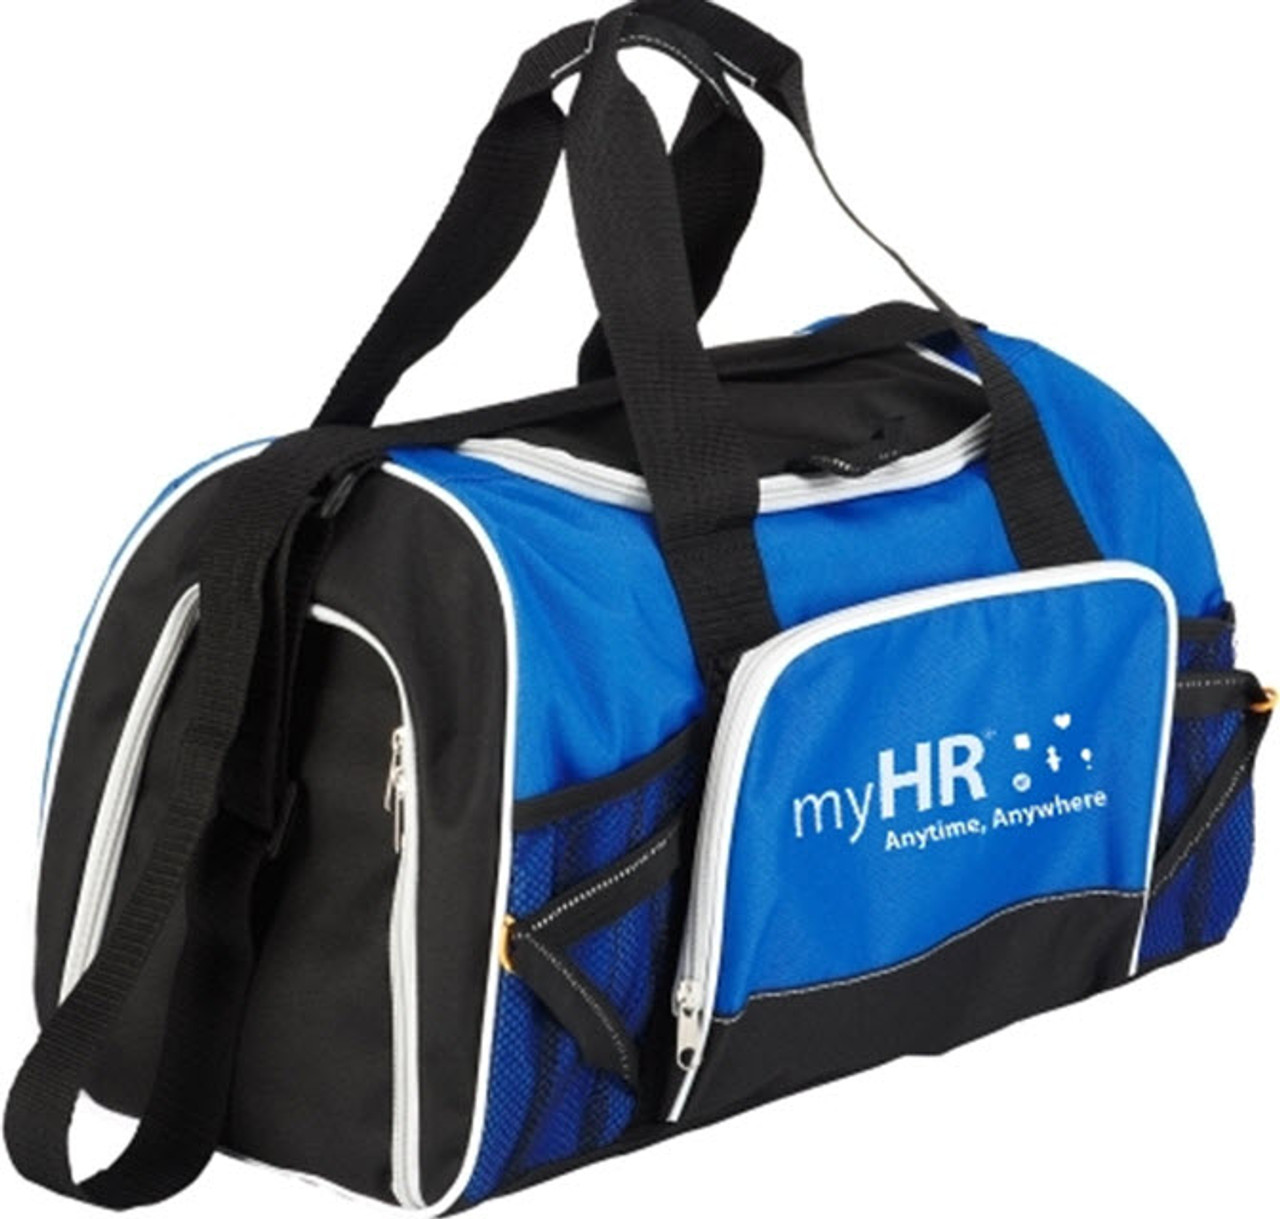 Racer Sports Duffel Bag